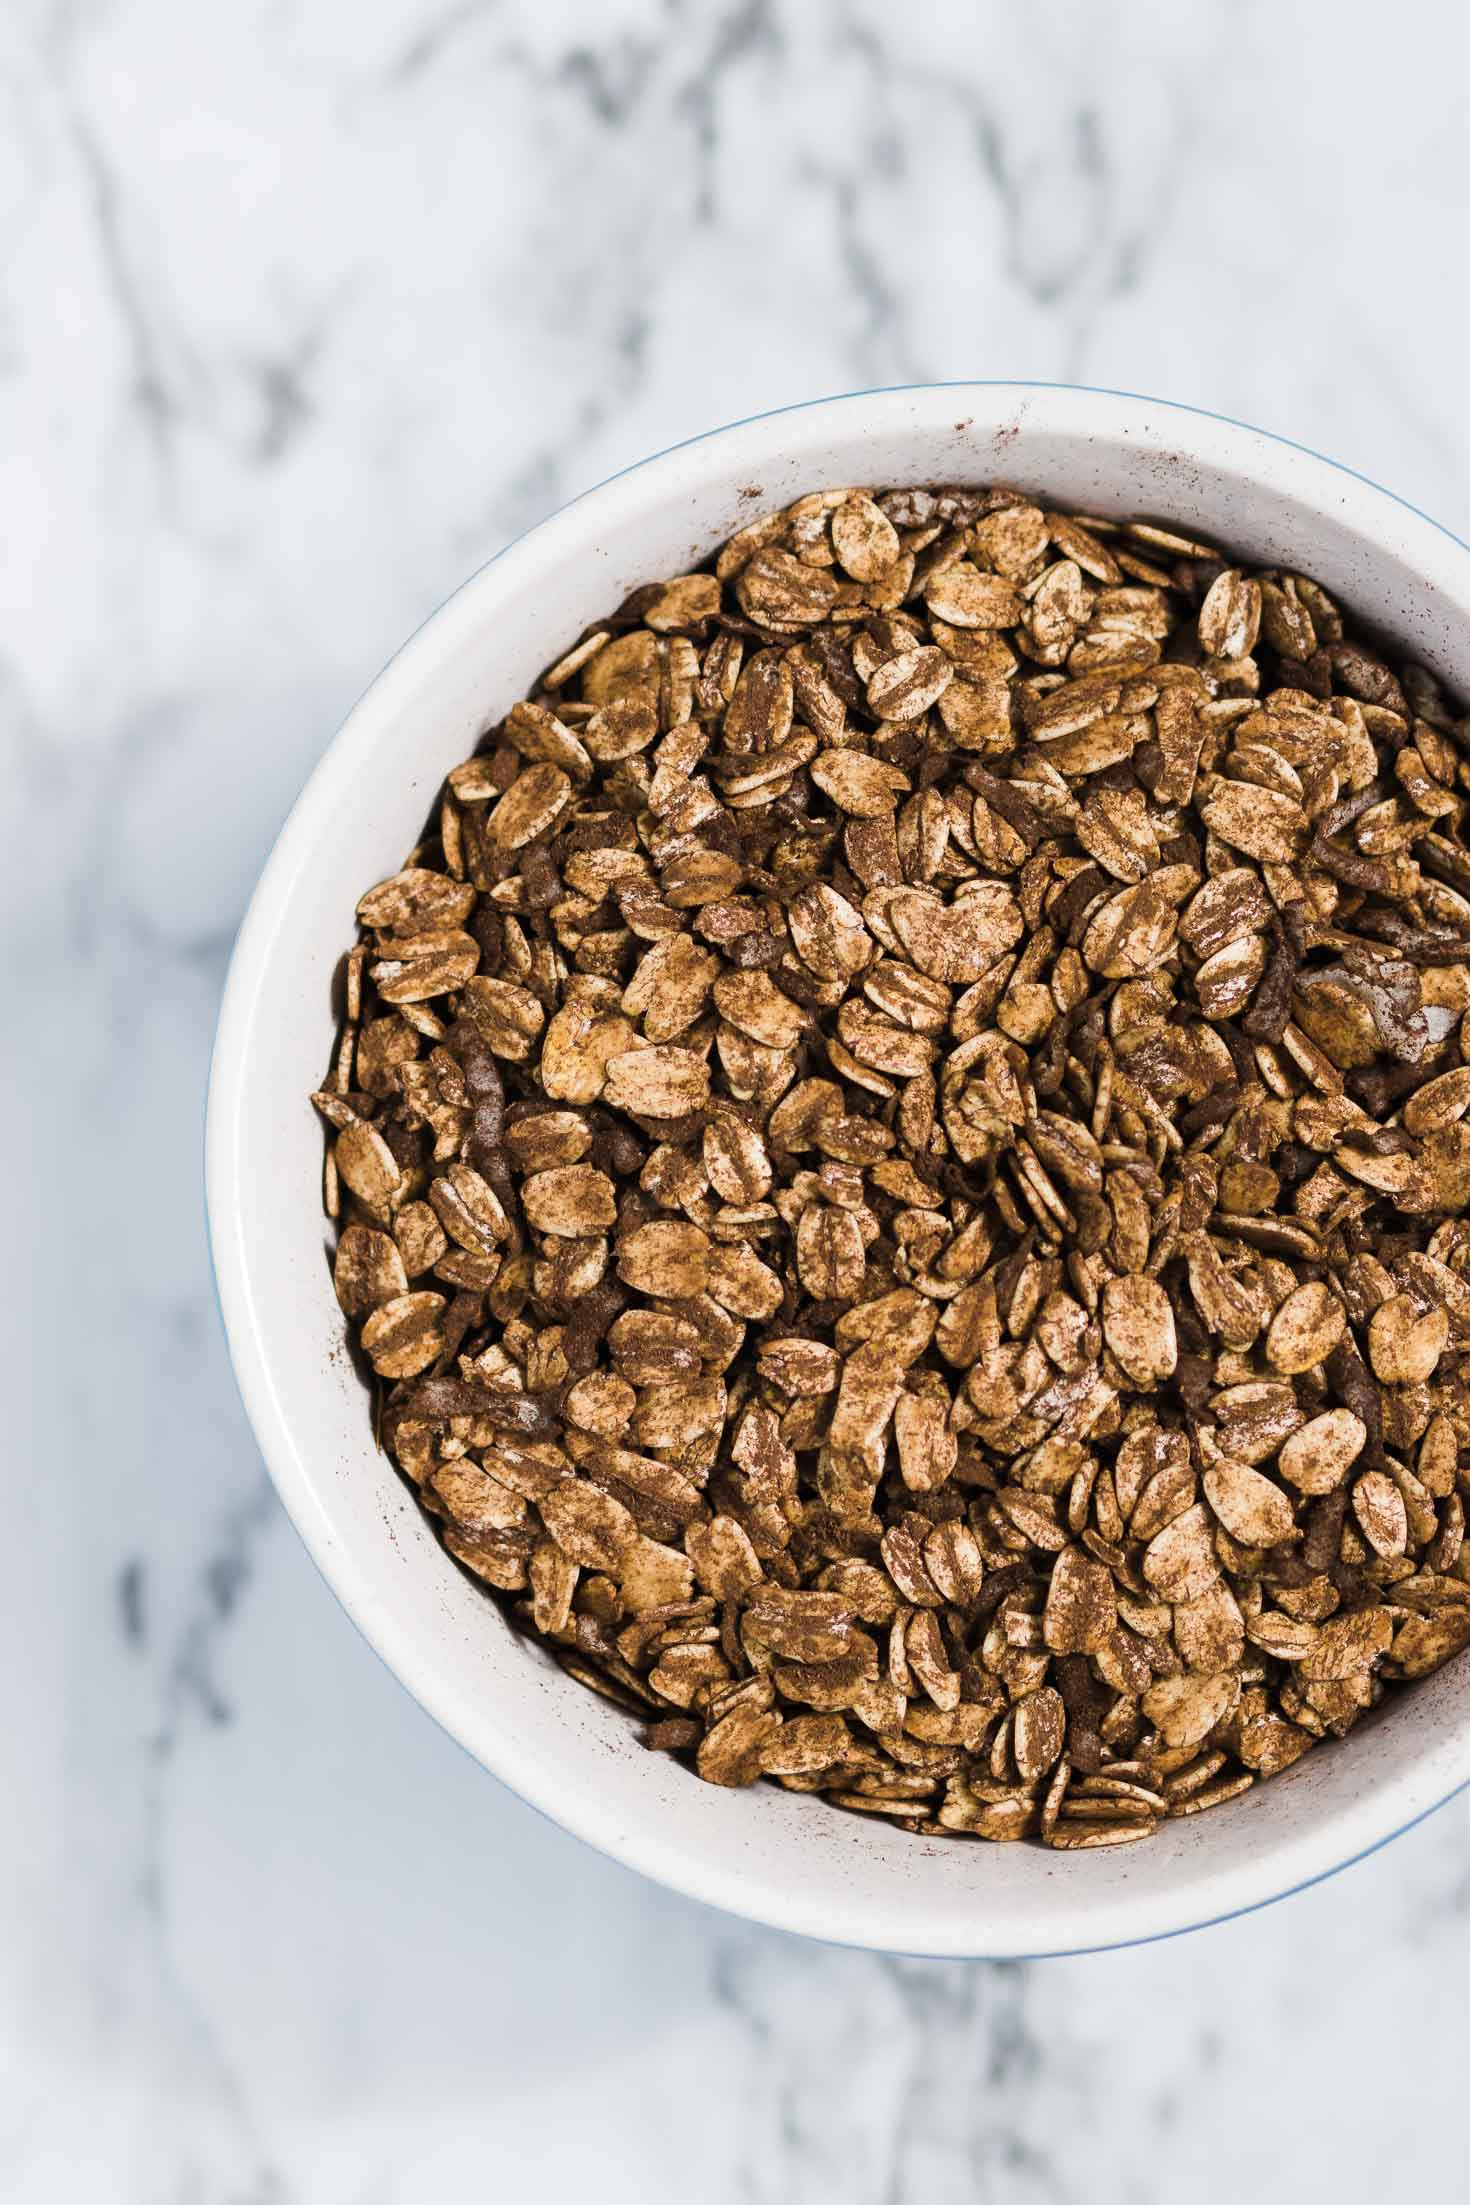 Pistachio Chocolate Granola-top view-rolled oats mixed with cocoa powder